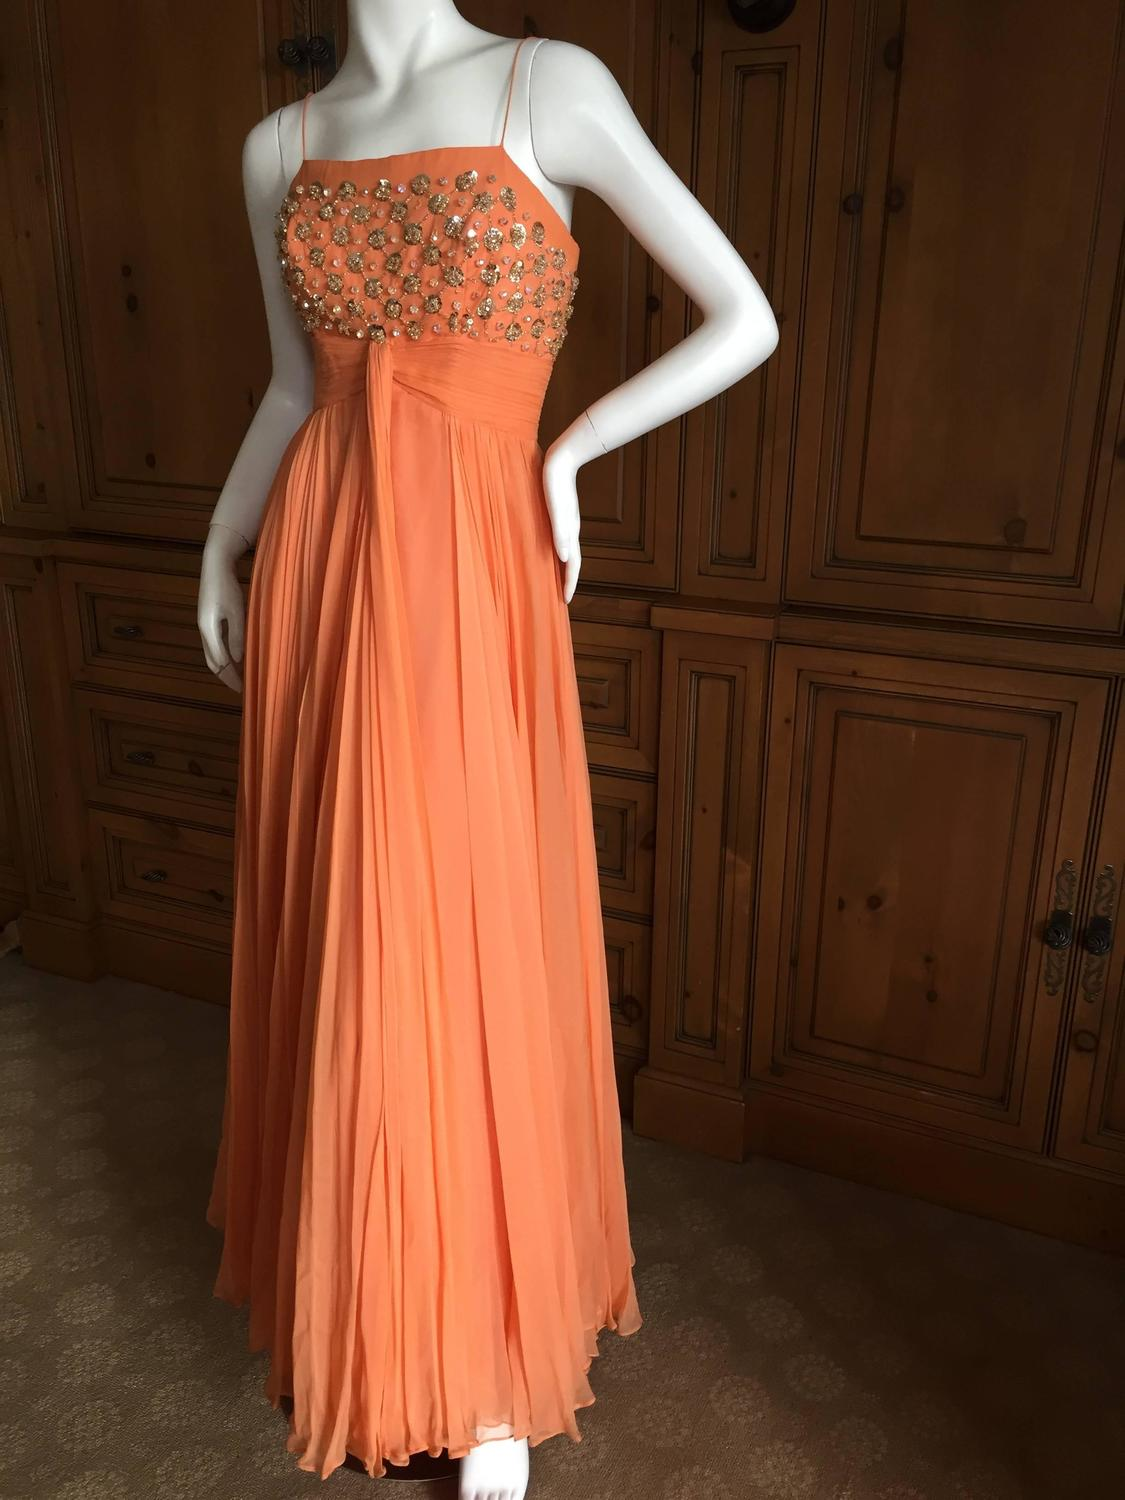 saks fifth ave evening dresses photo - 1